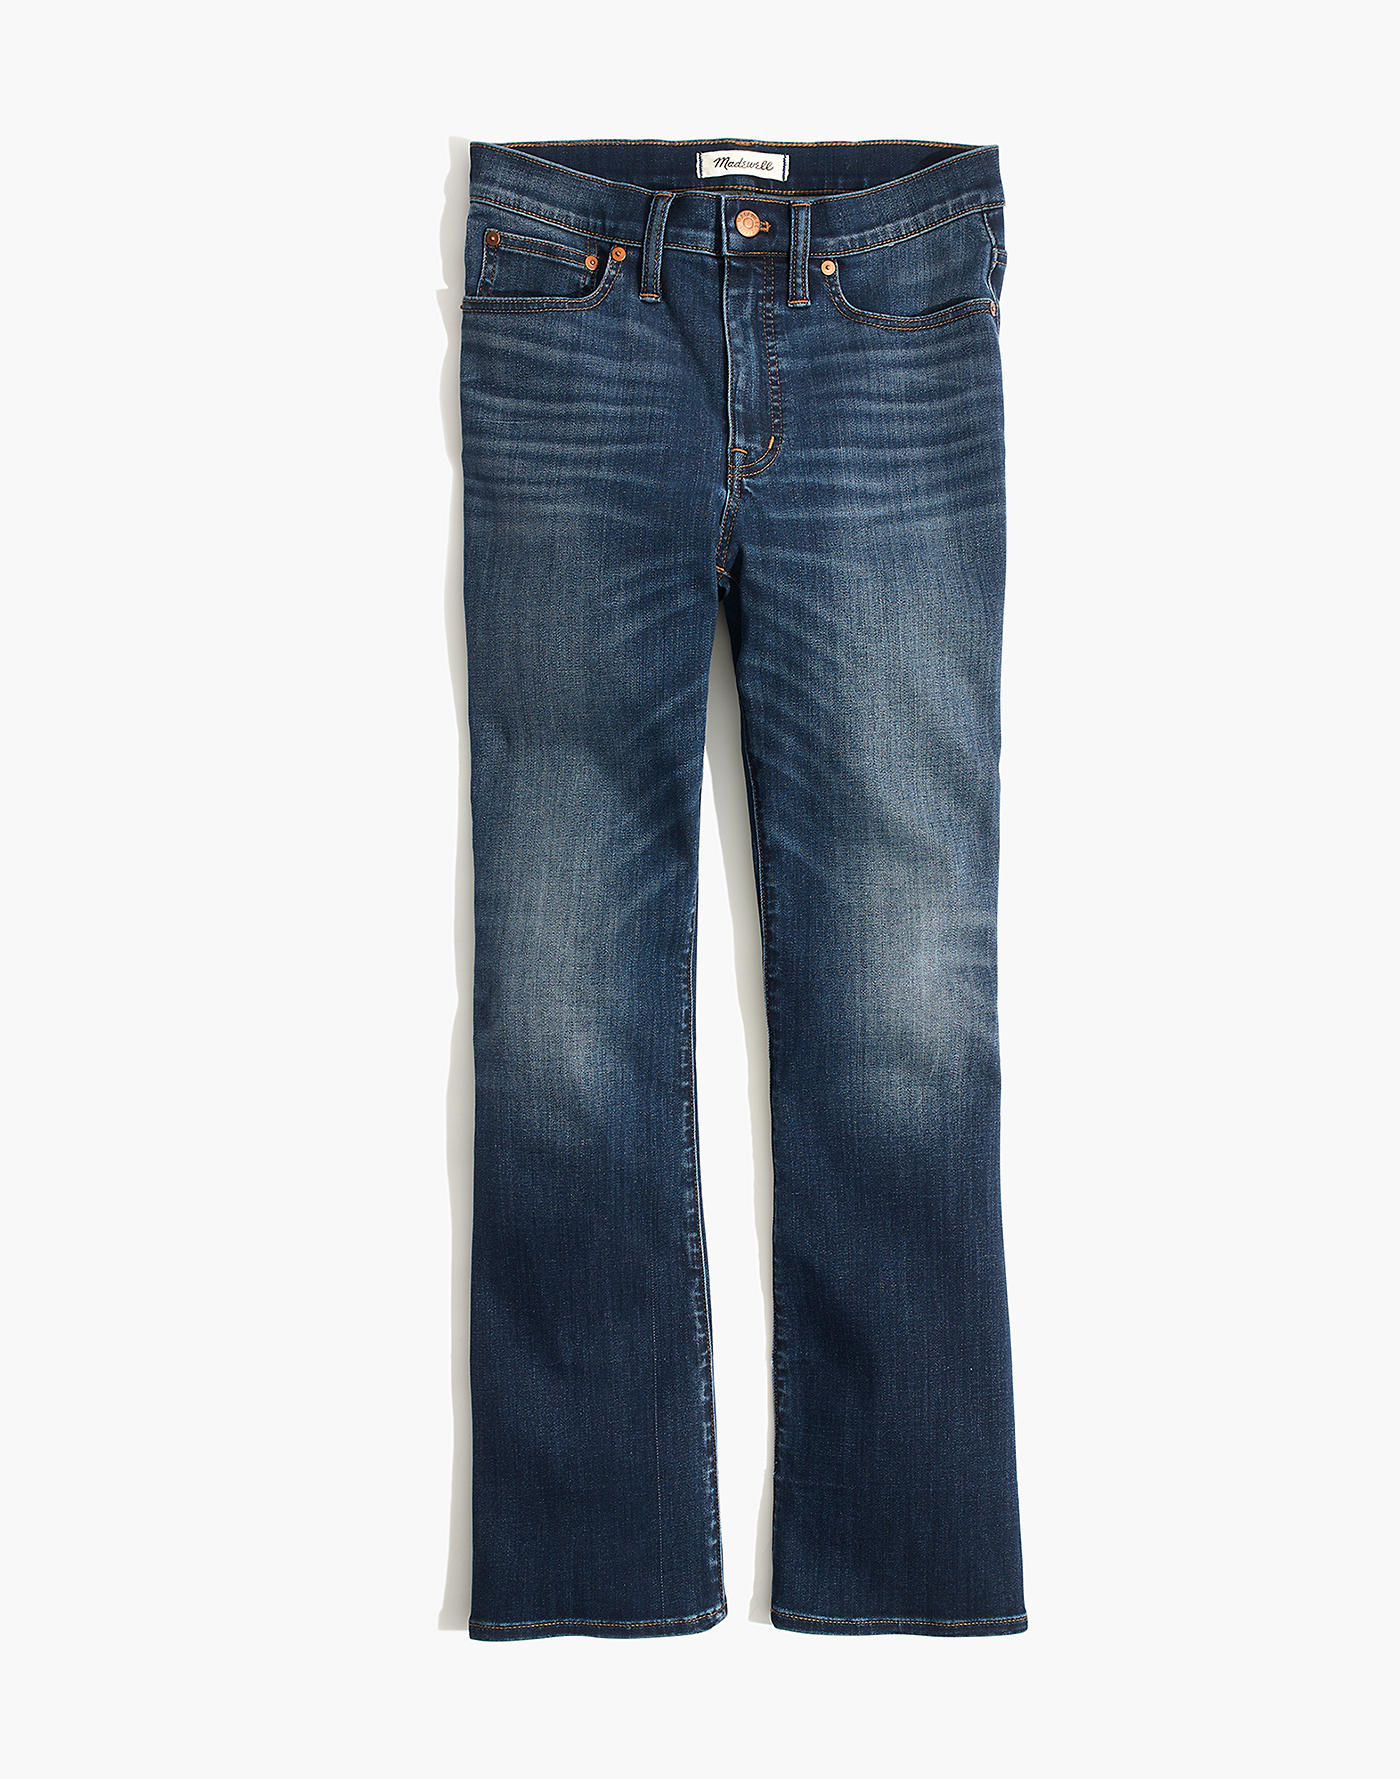 Old-Faithful Denim